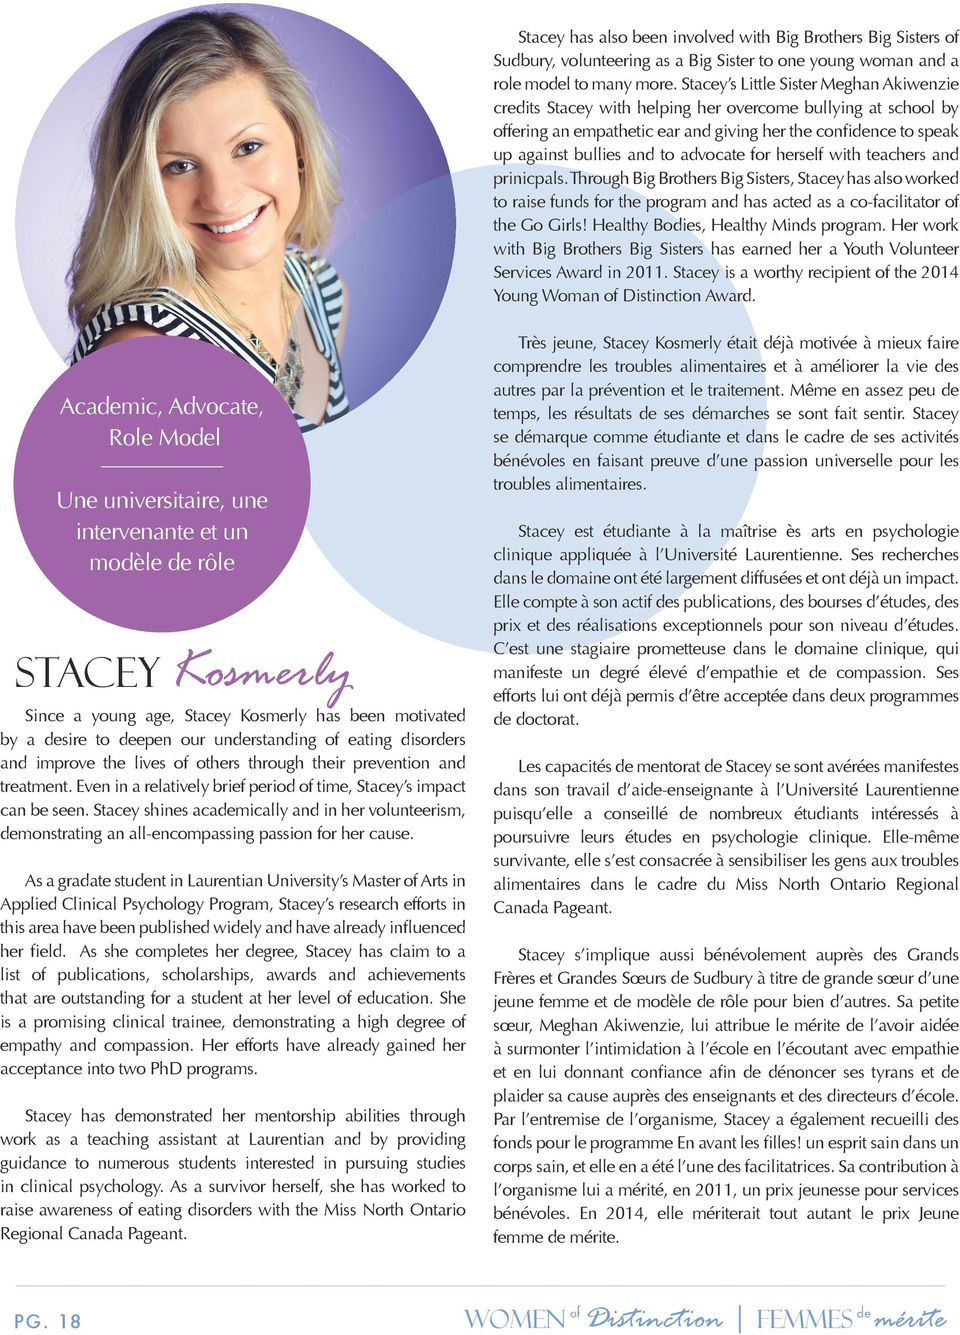 advocate for herself with teachers and prinicpals. Through Big Brothers Big Sisters, Stacey has also worked to raise funds for the program and has acted as a co-facilitator of the Go Girls!